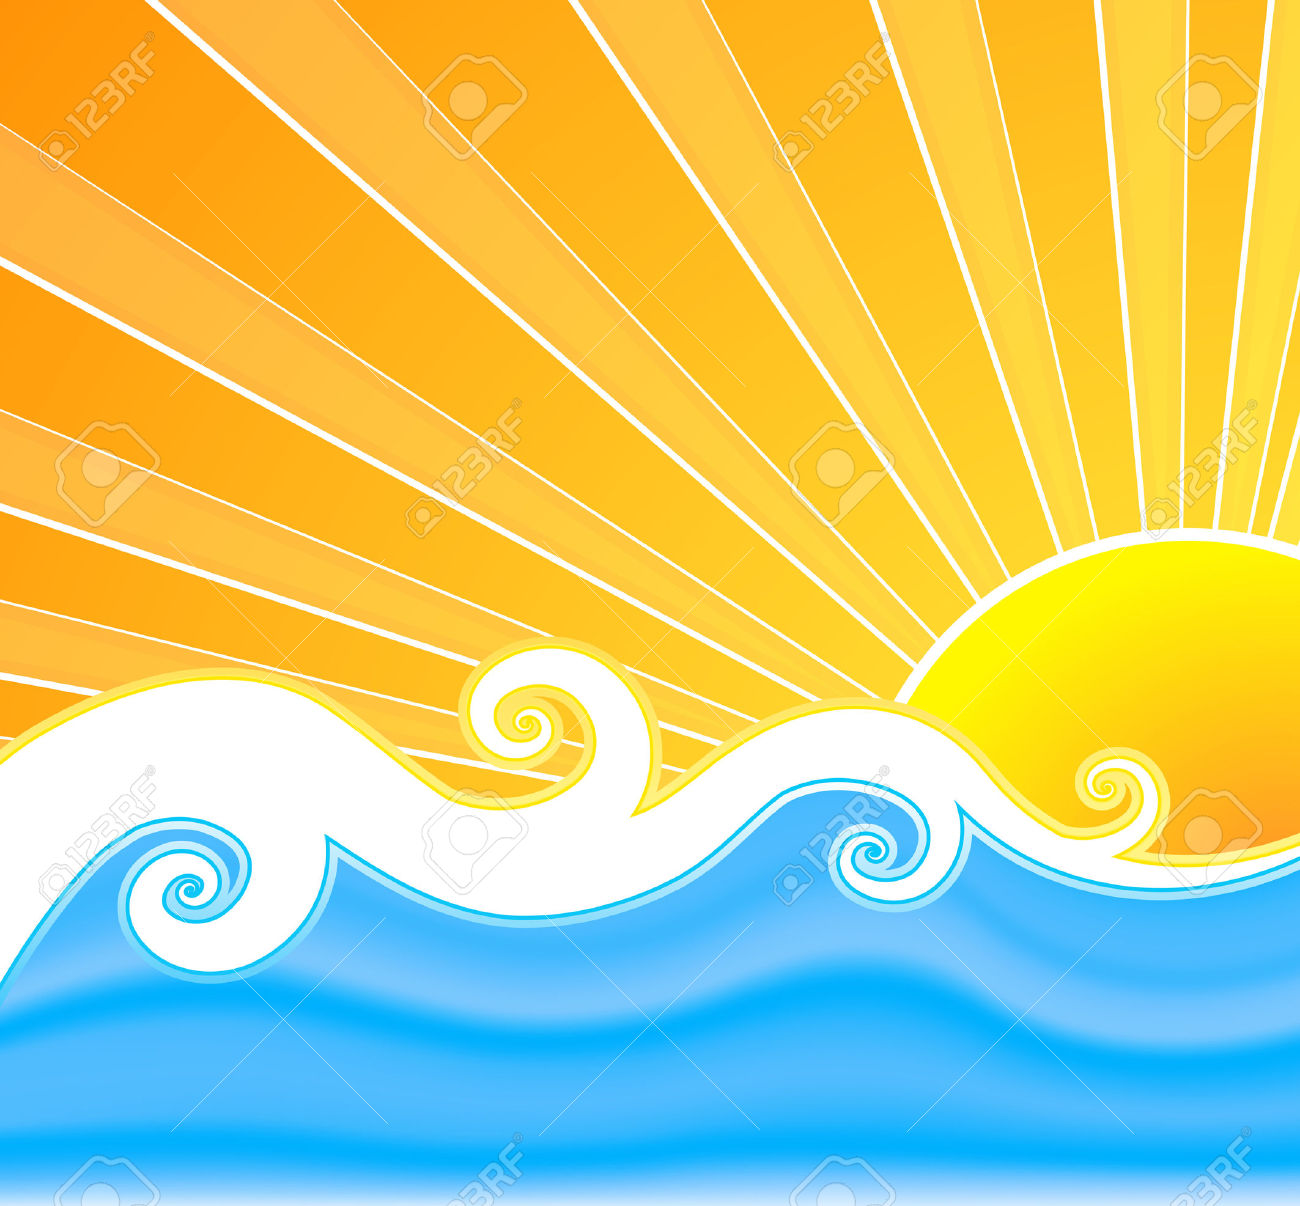 Vector Illustration Of A Swirly Retro Summer Background With.